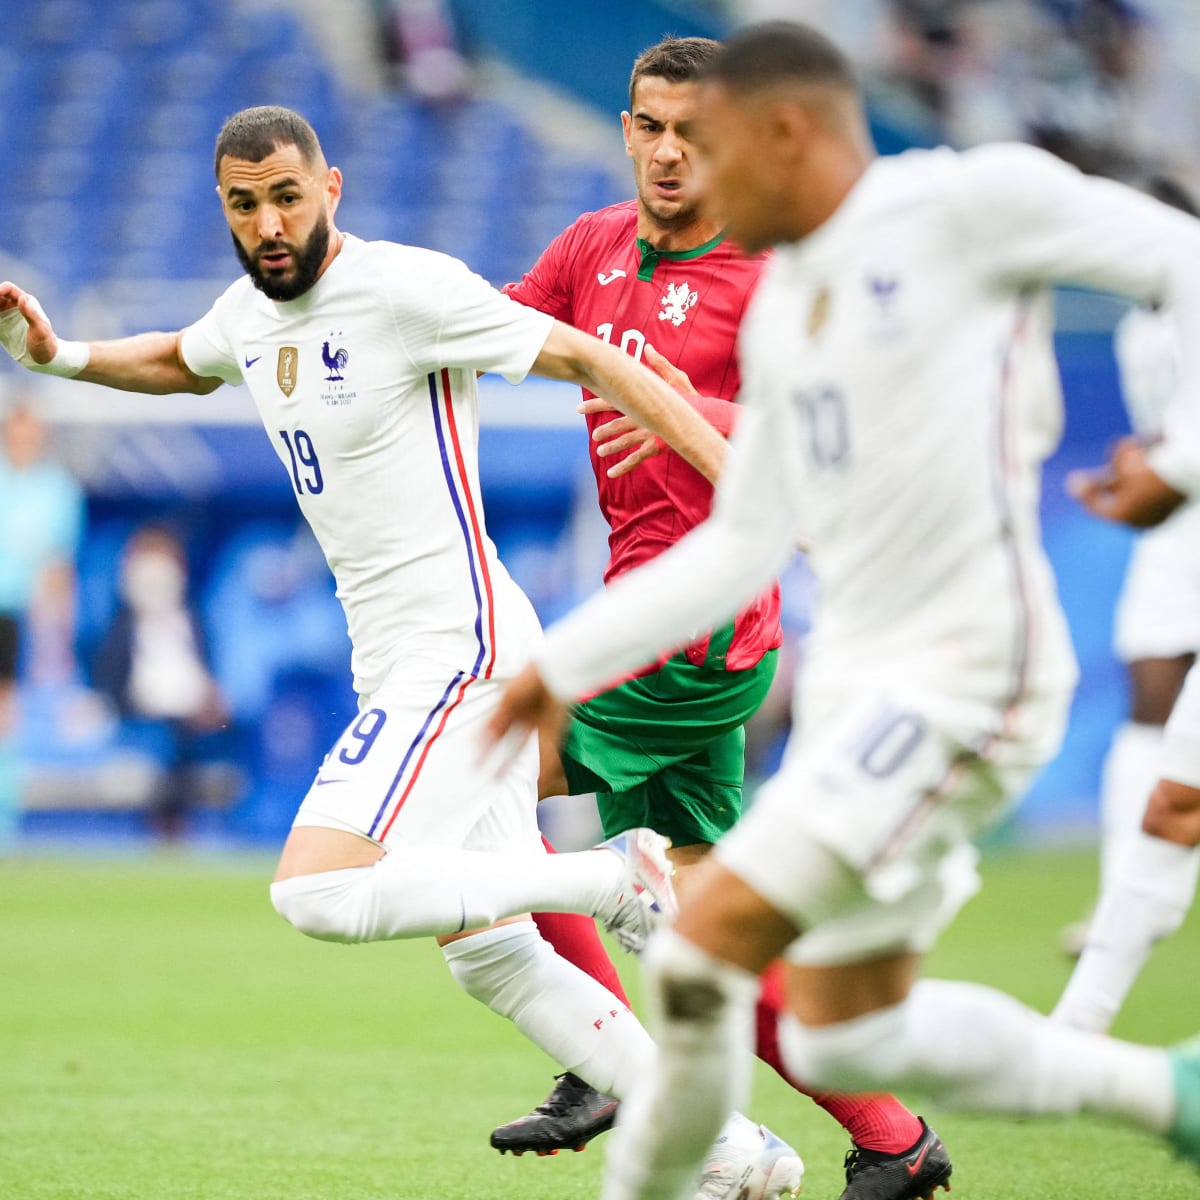 France vs Germany live stream: Watch Euro 2020 online, TV, lineups - Sports  Illustrated